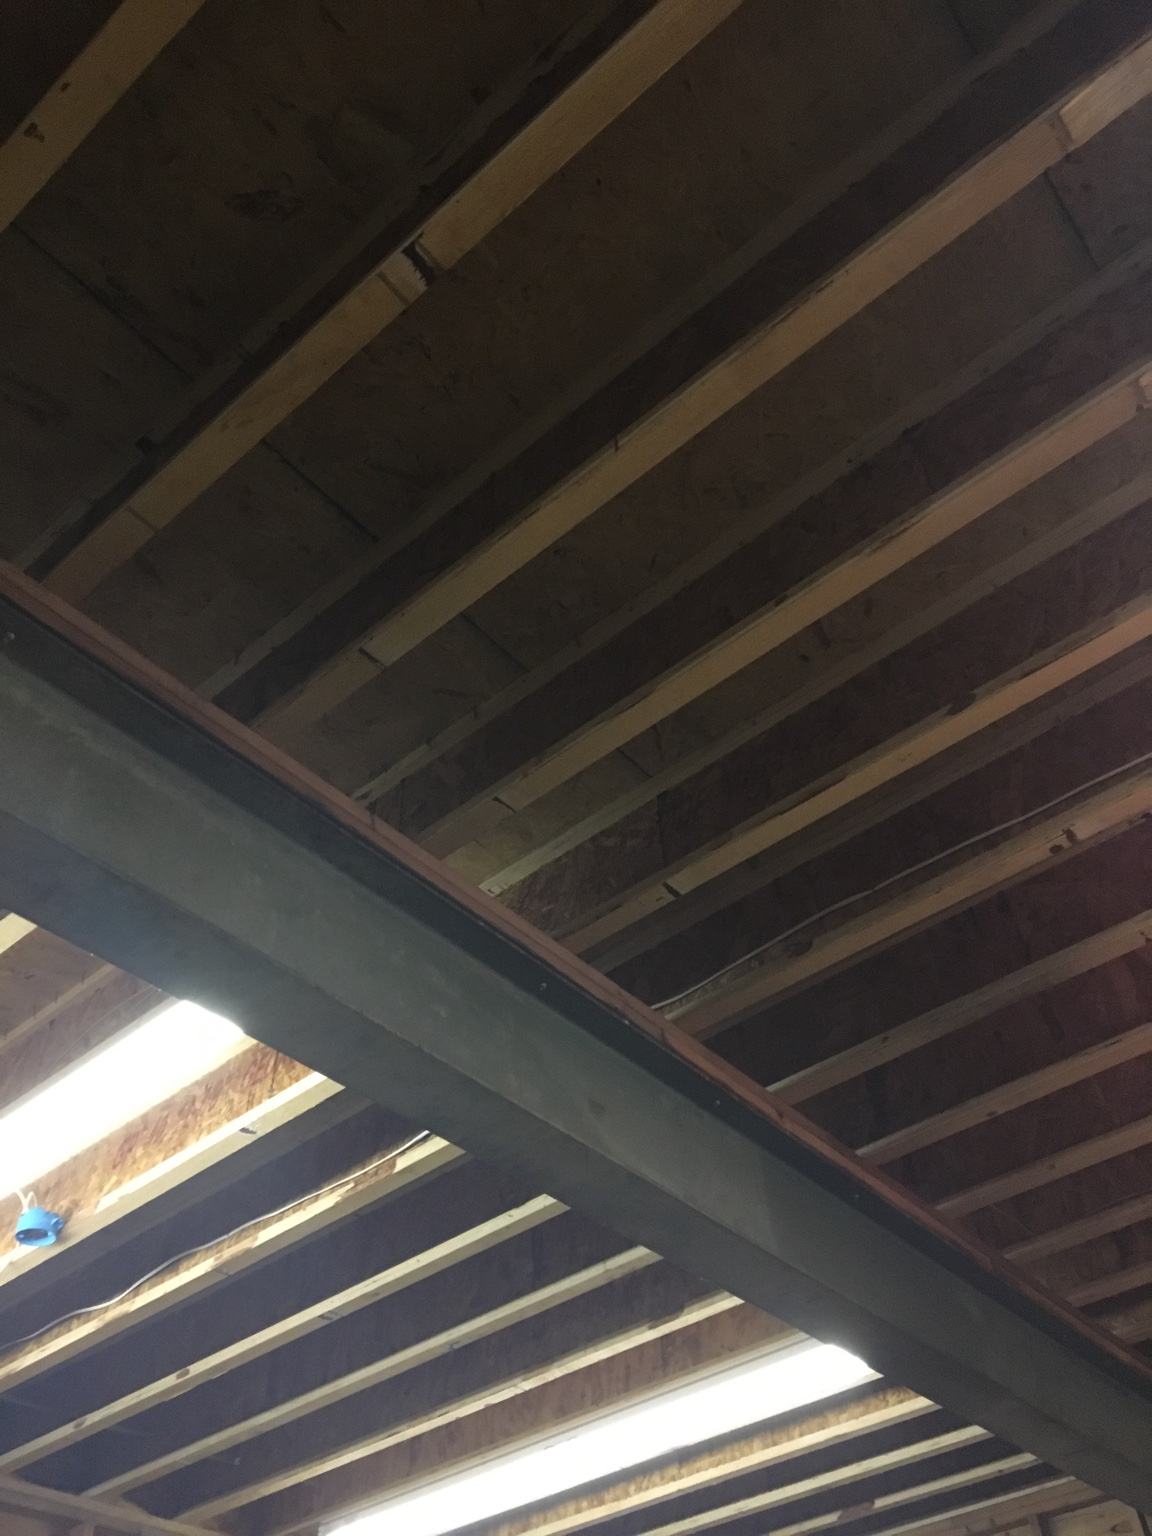 Here You Can See The Bare Joists There Are Also Two I Beams In This Garage But Do Not Believe They Will Cause An Issue As Would Install A Lift